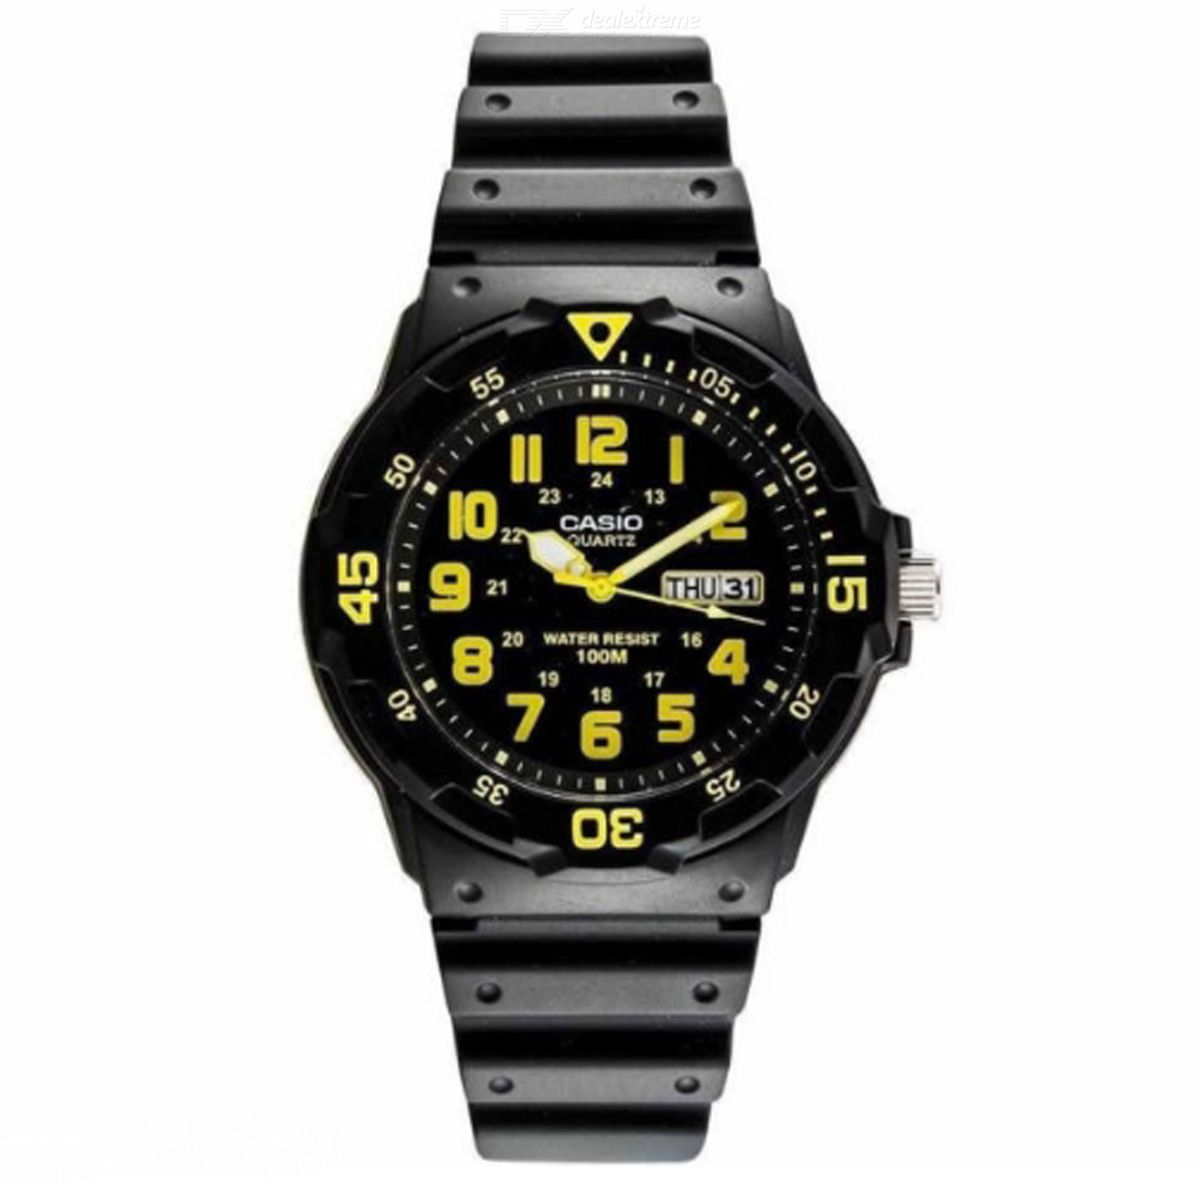 CASIO MRW-200H-9BVDFMen's Analog Watch - Black + Yellow (Without Box)